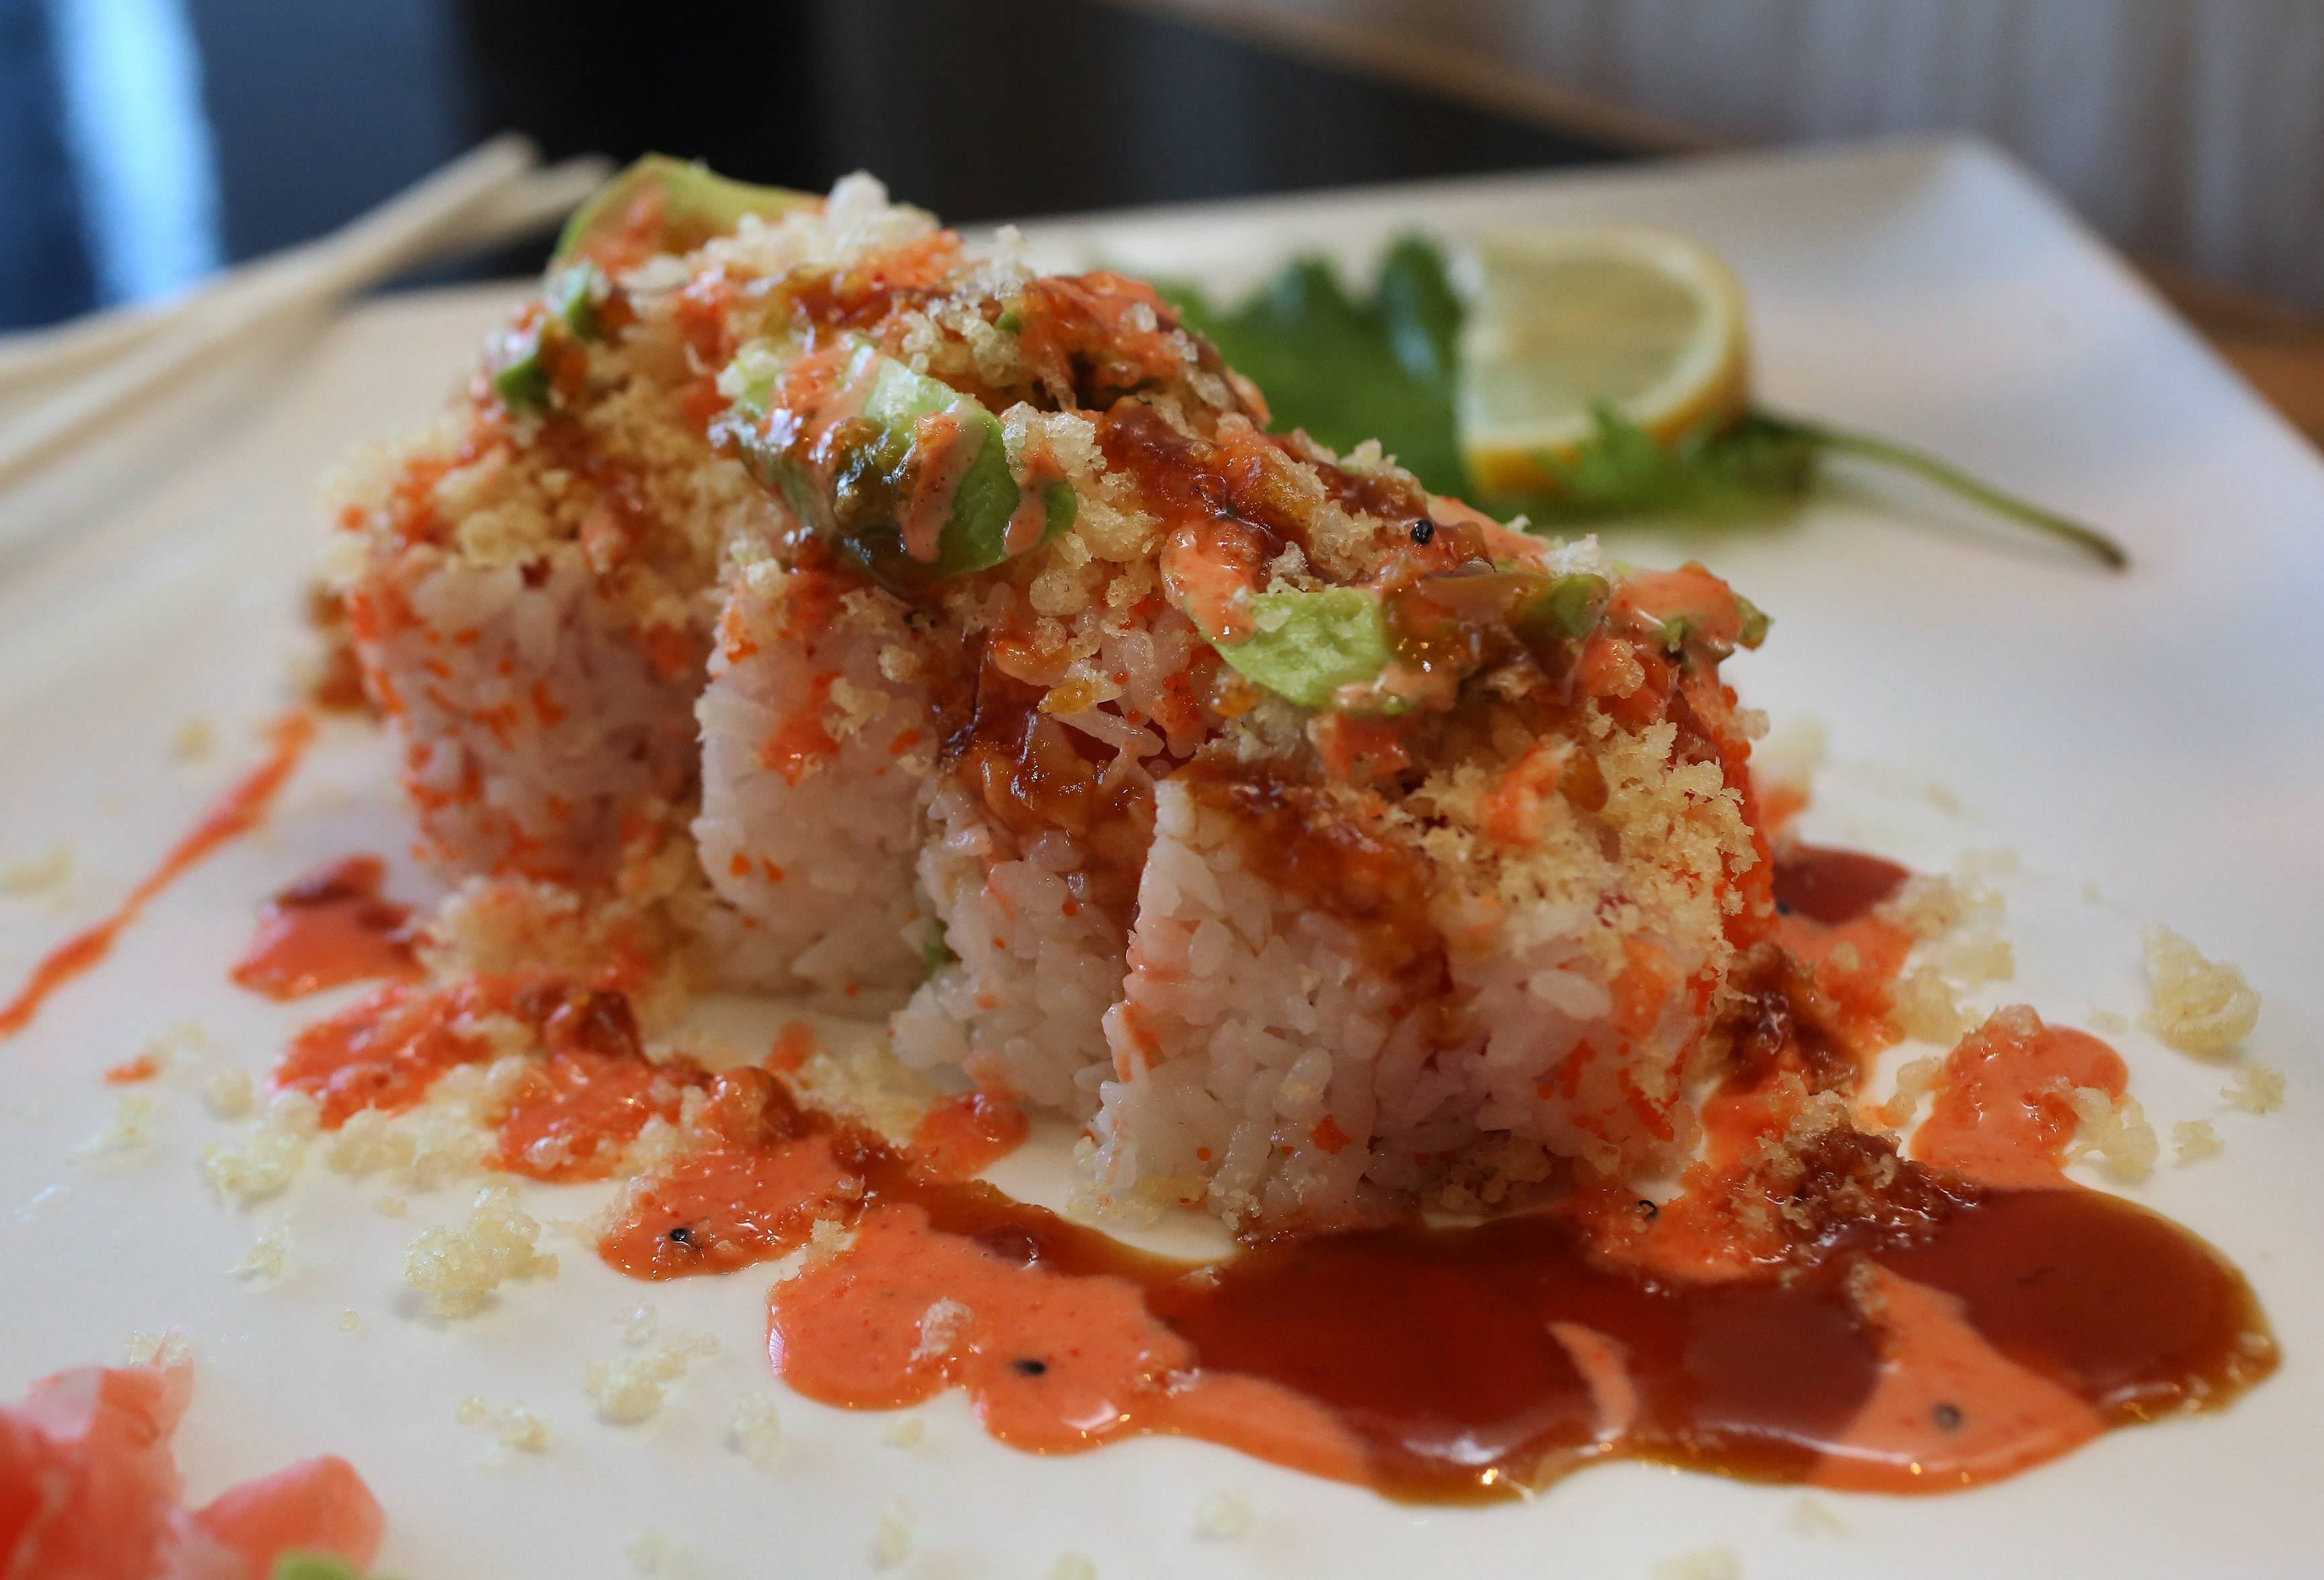 The Crispy Tuna Roll is a standout on the menu at Hayashi Japanese Restaurant in Gurnee.